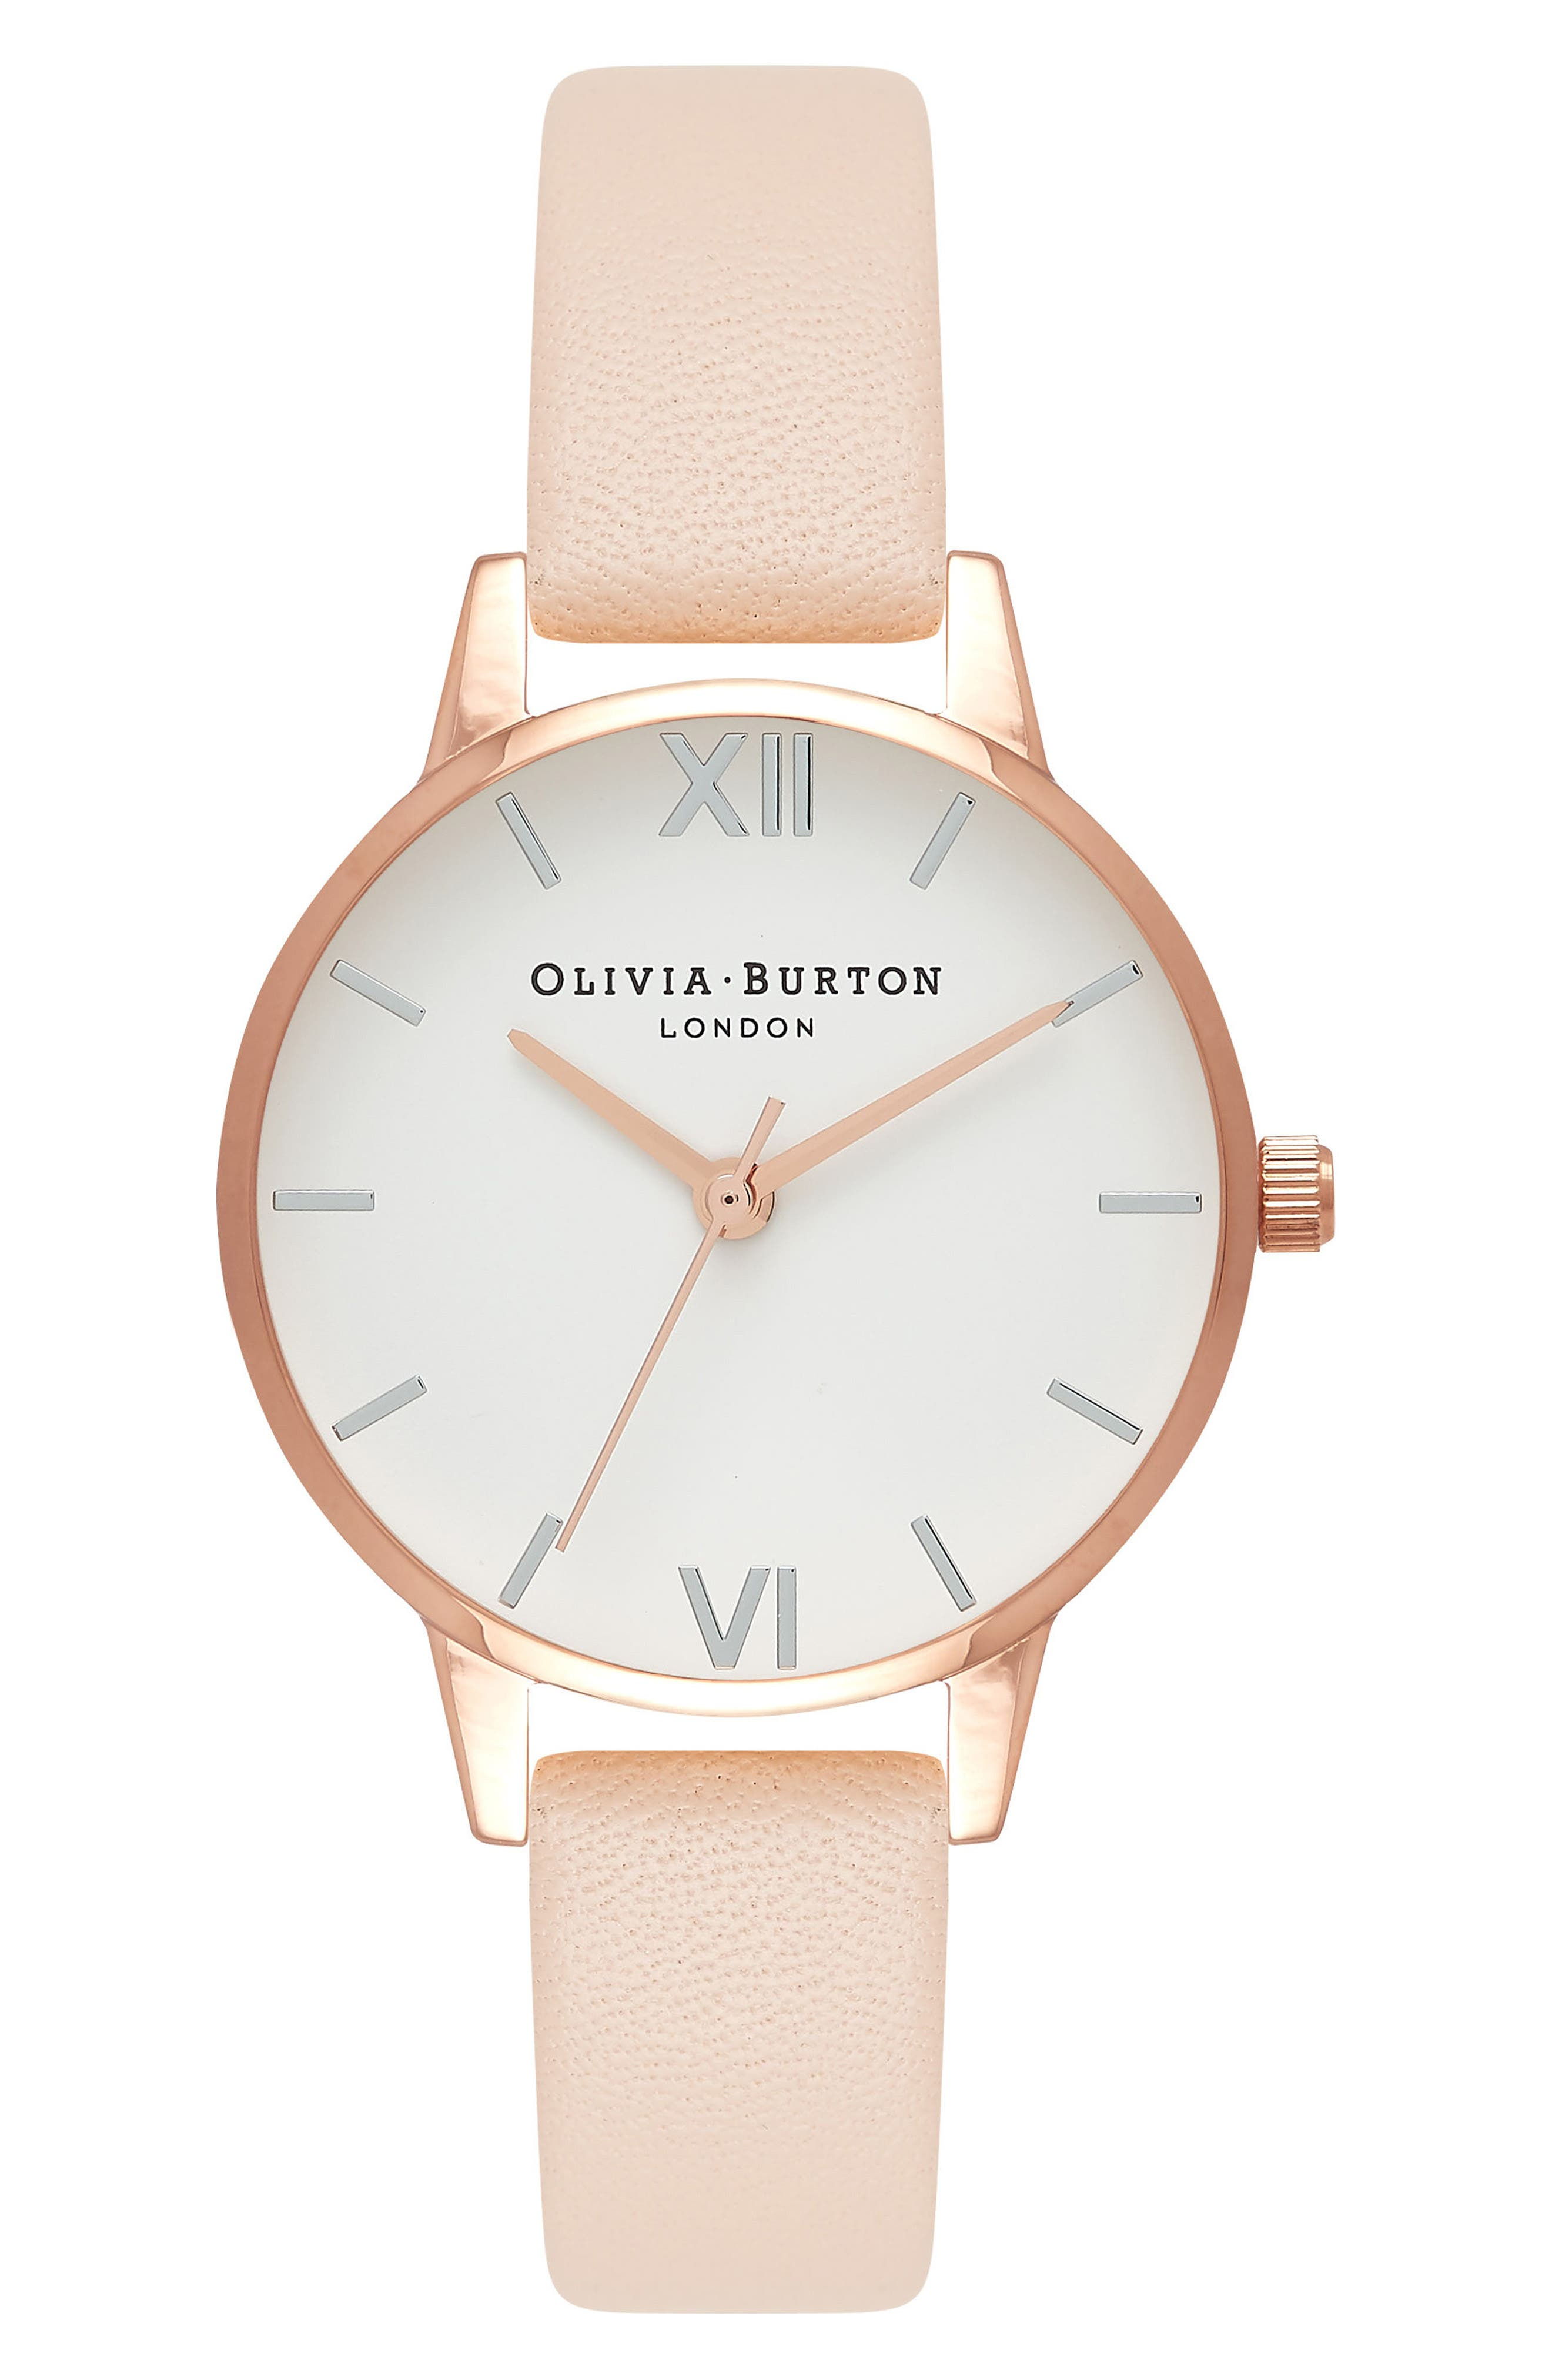 OLIVIA BURTON Midi Dial Leather Strap Watch, 30mm, Main, color, NUDE PEACH/ WHITE/ ROSE GOLD